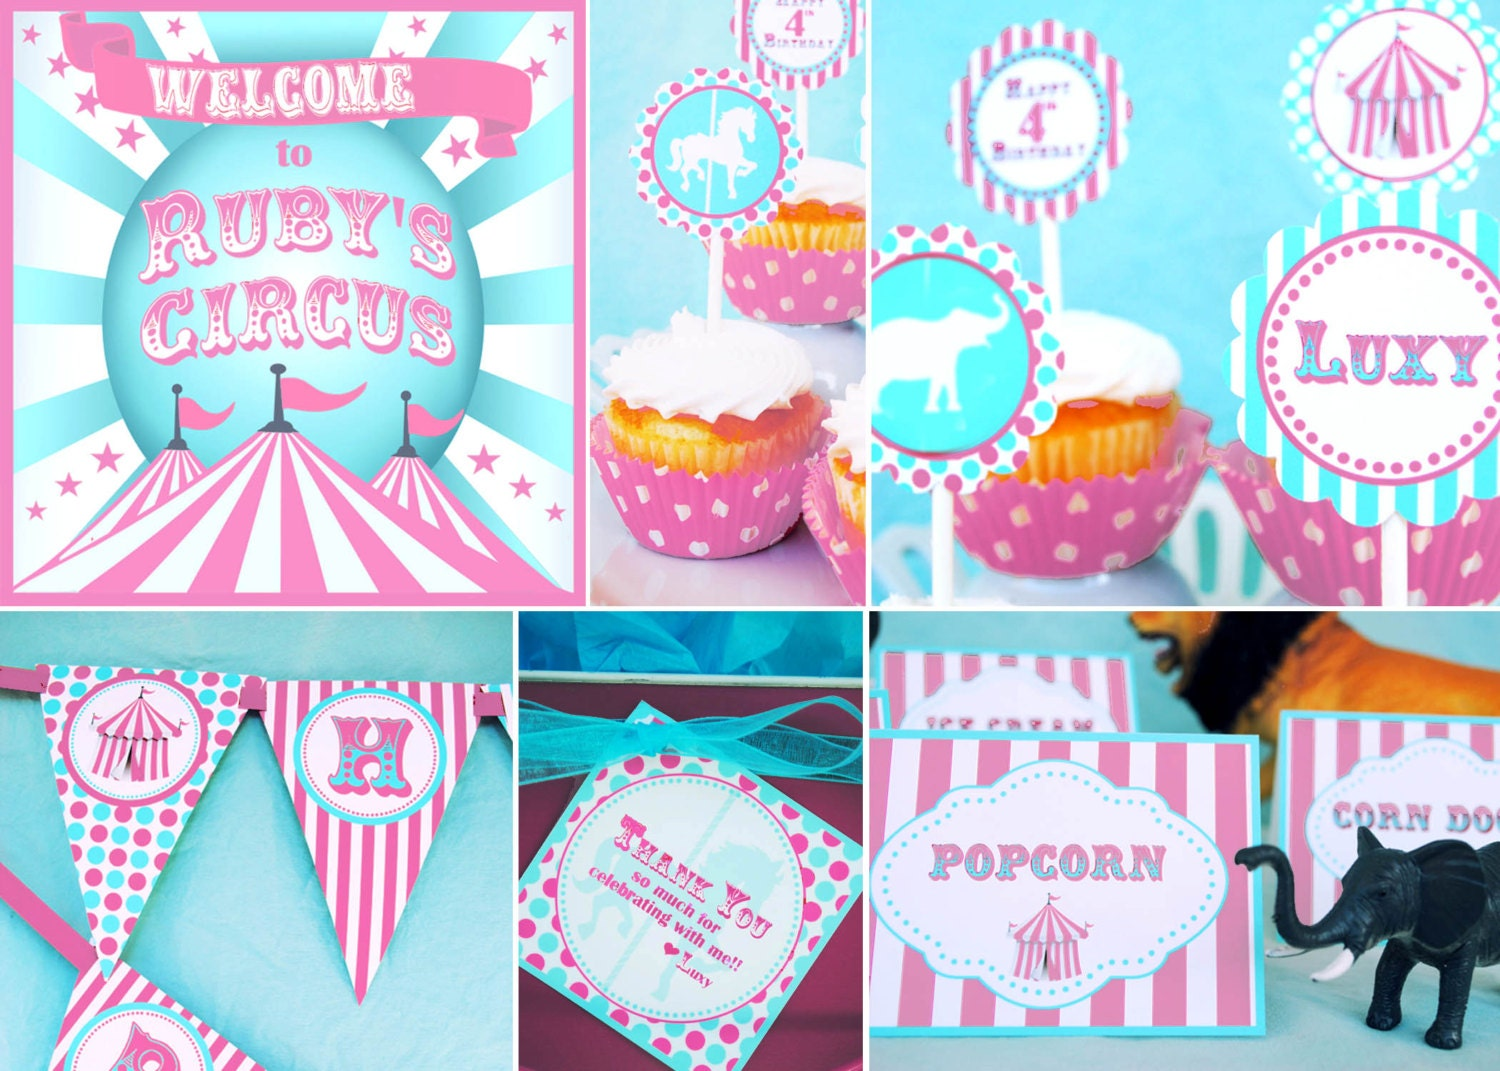 party banner fullxfull carnival signage backdrop listing poster au decorations il zoom circus decor